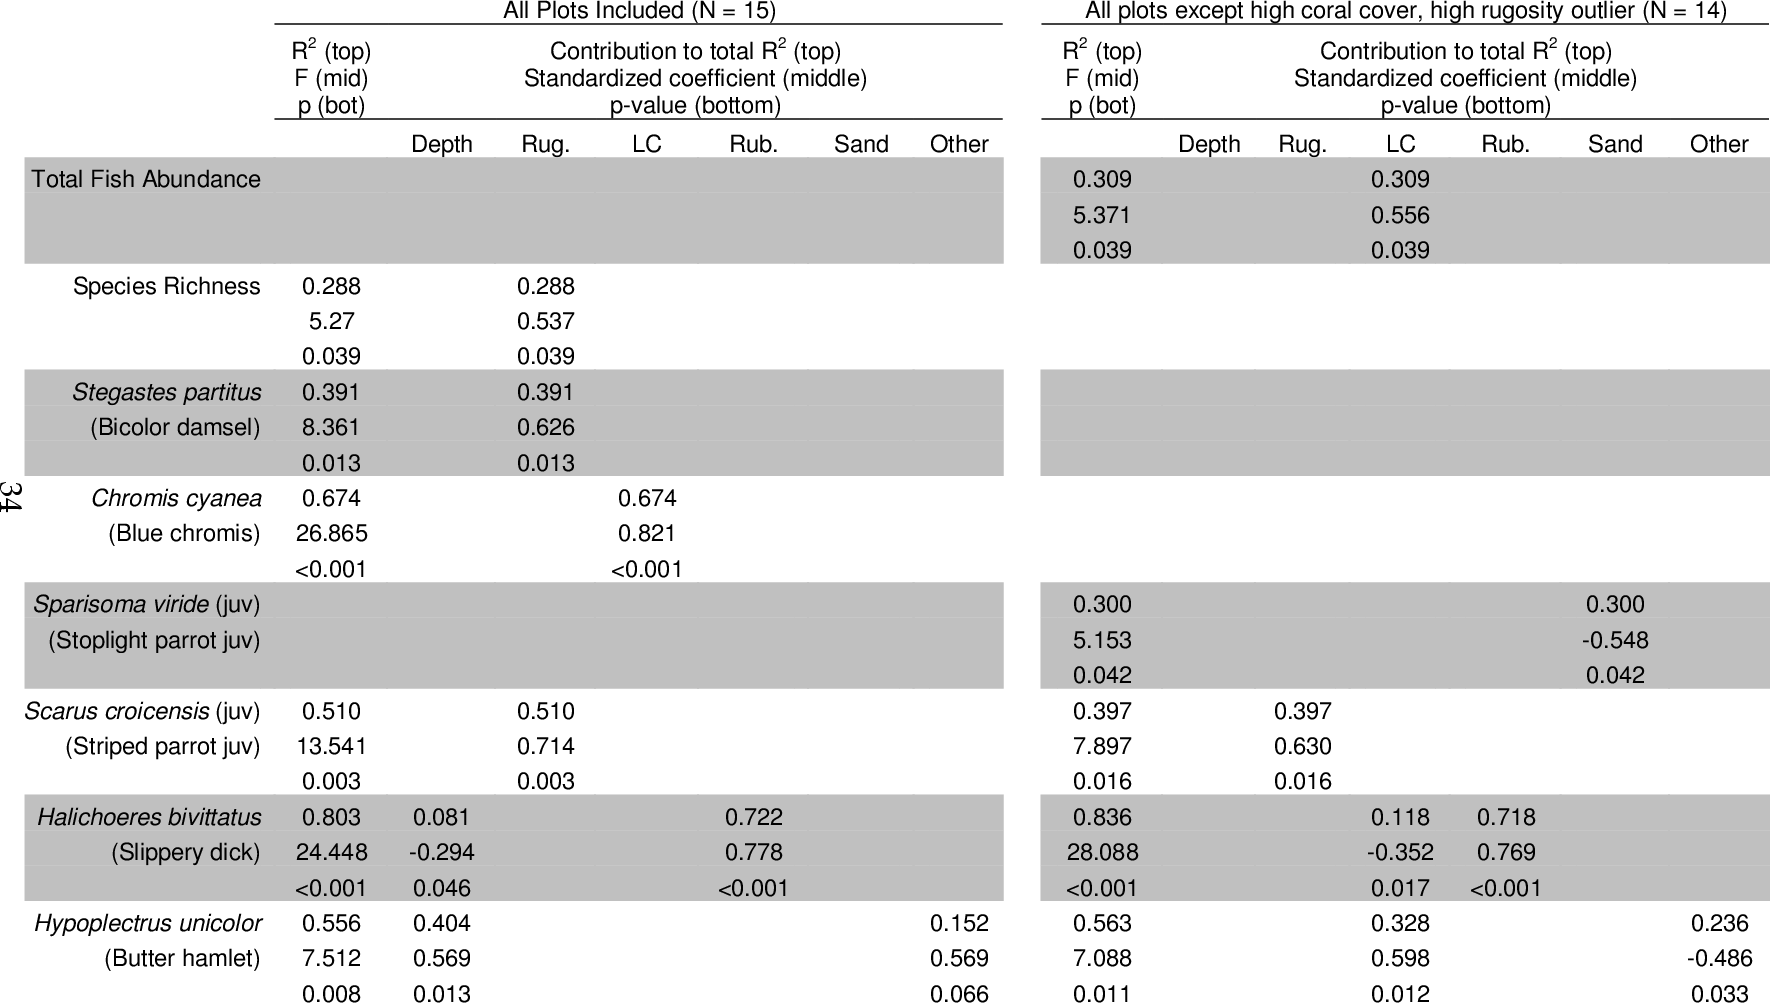 Table 3-1: Correlations between fish assemblage and benthic habitat measures (depth, rugosity, live coral cover, rubble cover, sand cover, other cover) in the Florida Keys. Relationships were determined using forward stepwise regressions.